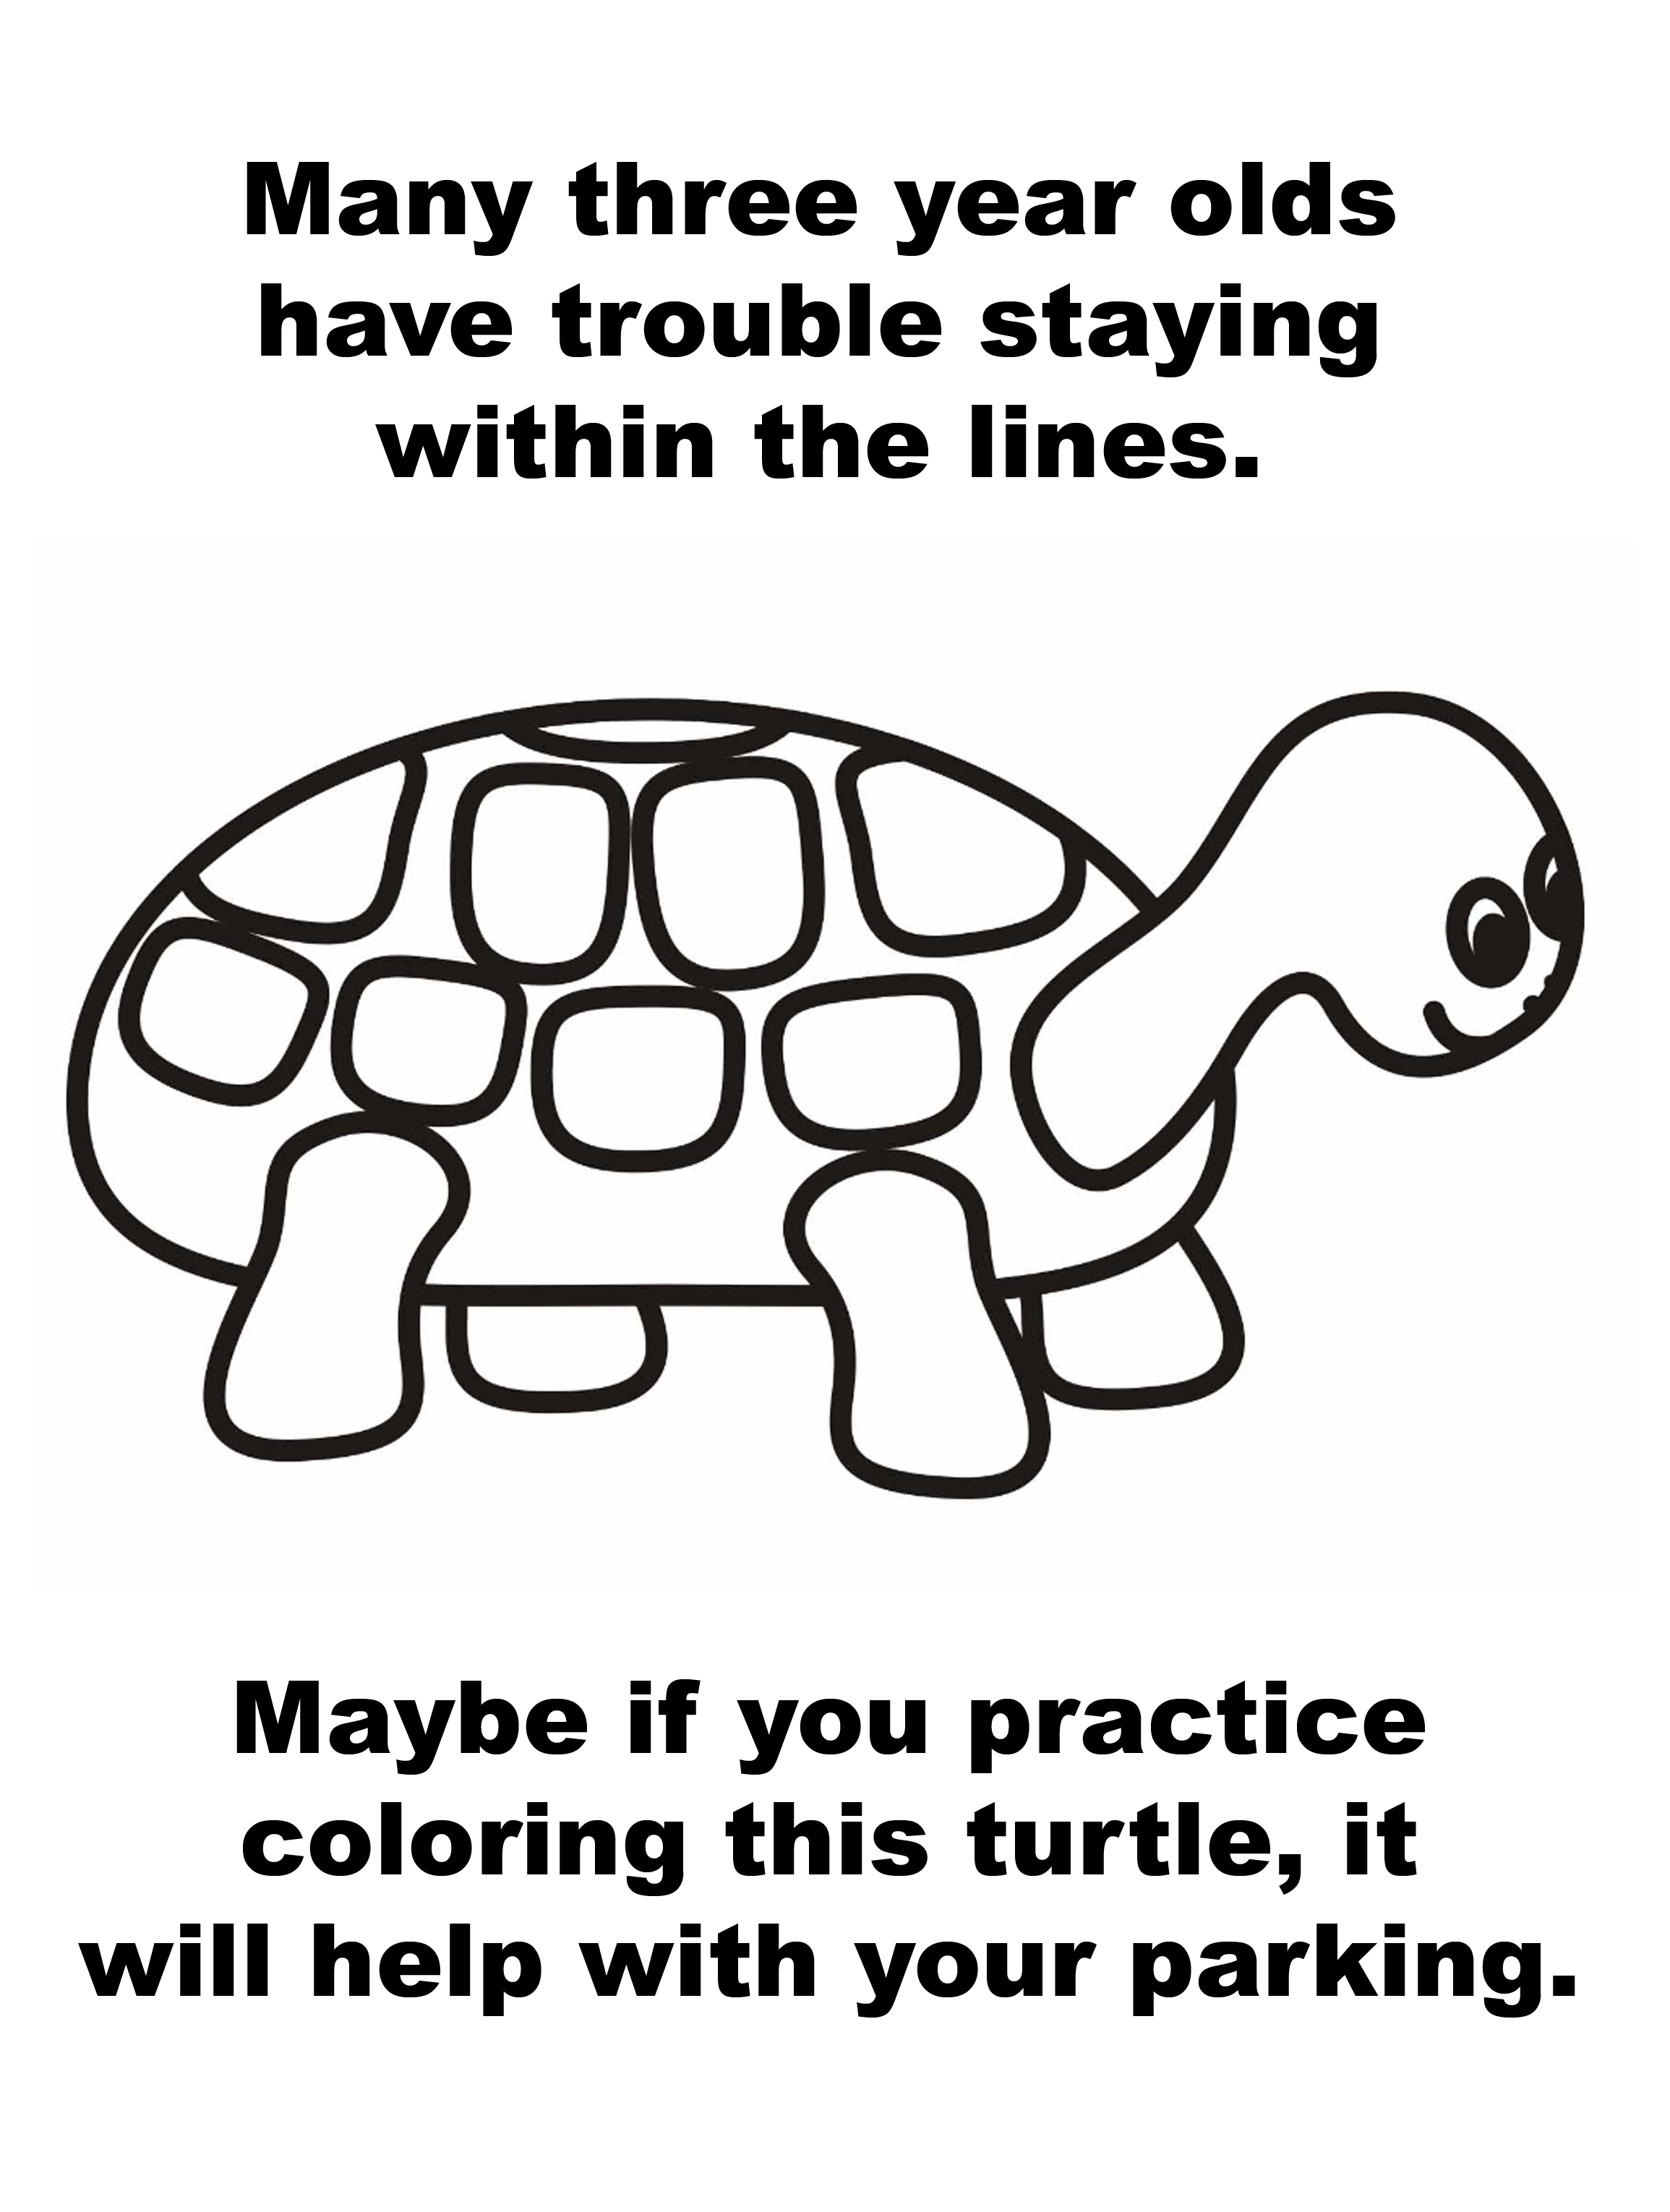 parking-ticket-turtle-coloring-line-3